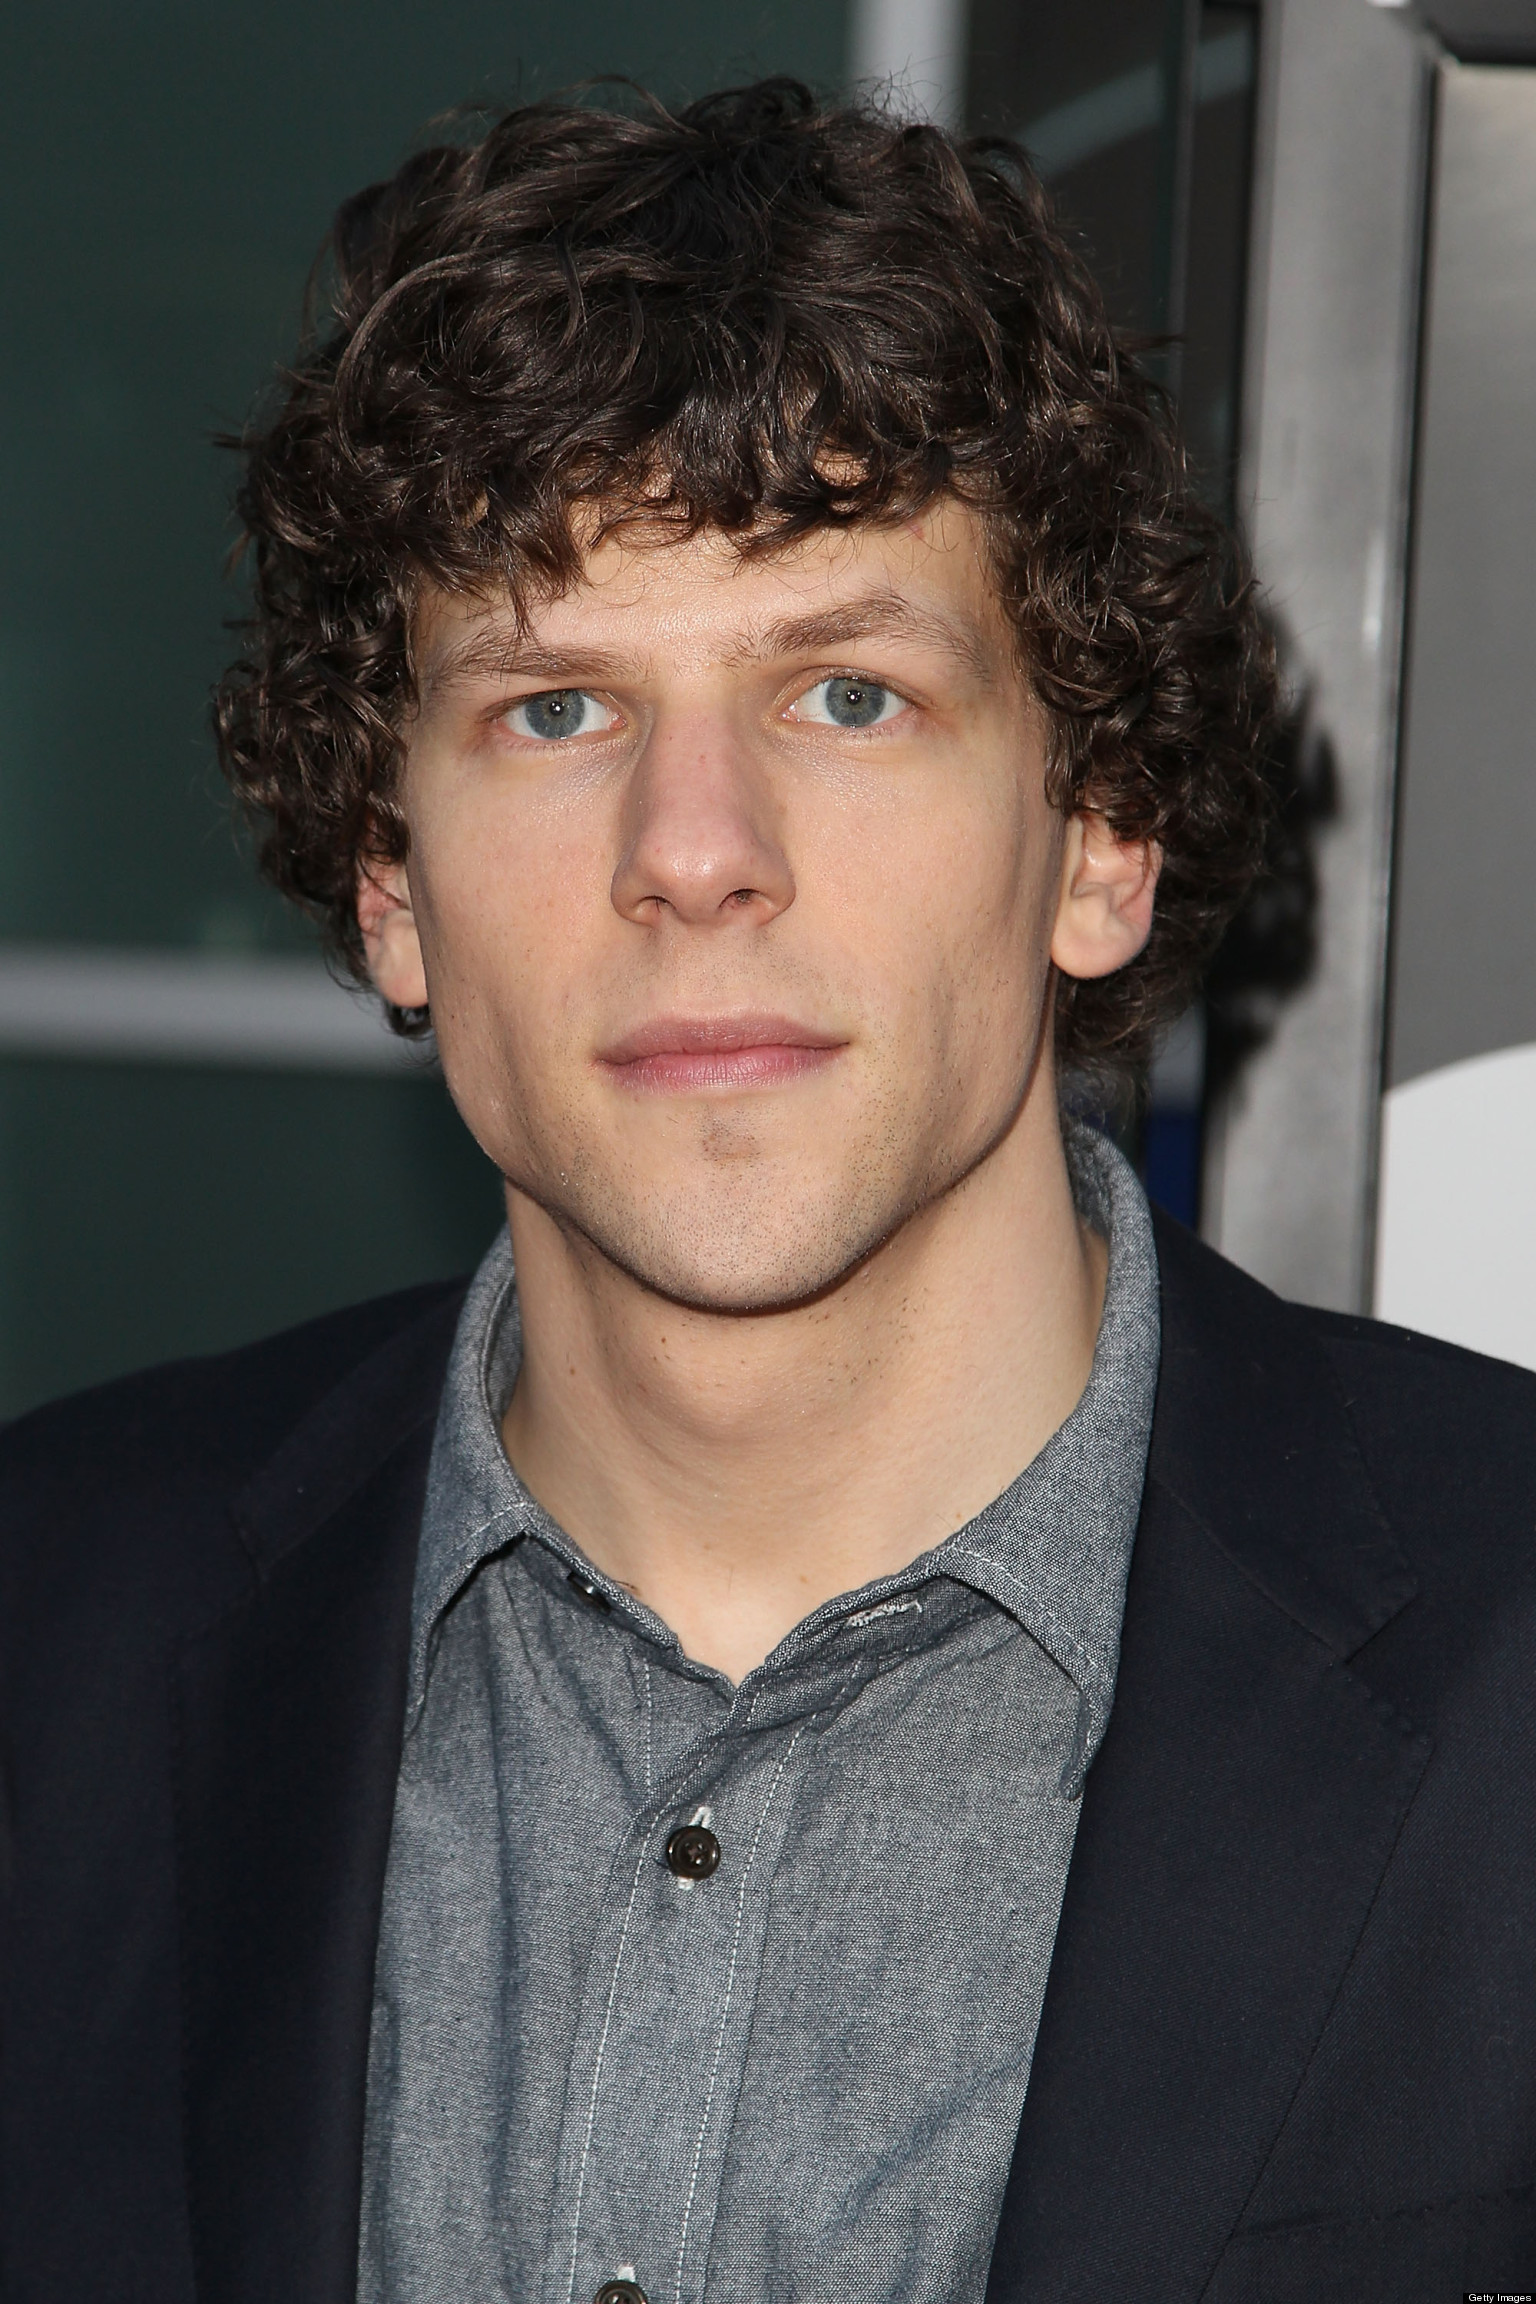 Jesse Eisenberg will play Super-villain Lex Luthor and Jeremy Irons will play Bruce Wayne's Butler Alfred Pennyworth in Warner Bros upcoming Batman/Superman ... - o-JESSE-EISENBERG-INTERVIEW-facebook